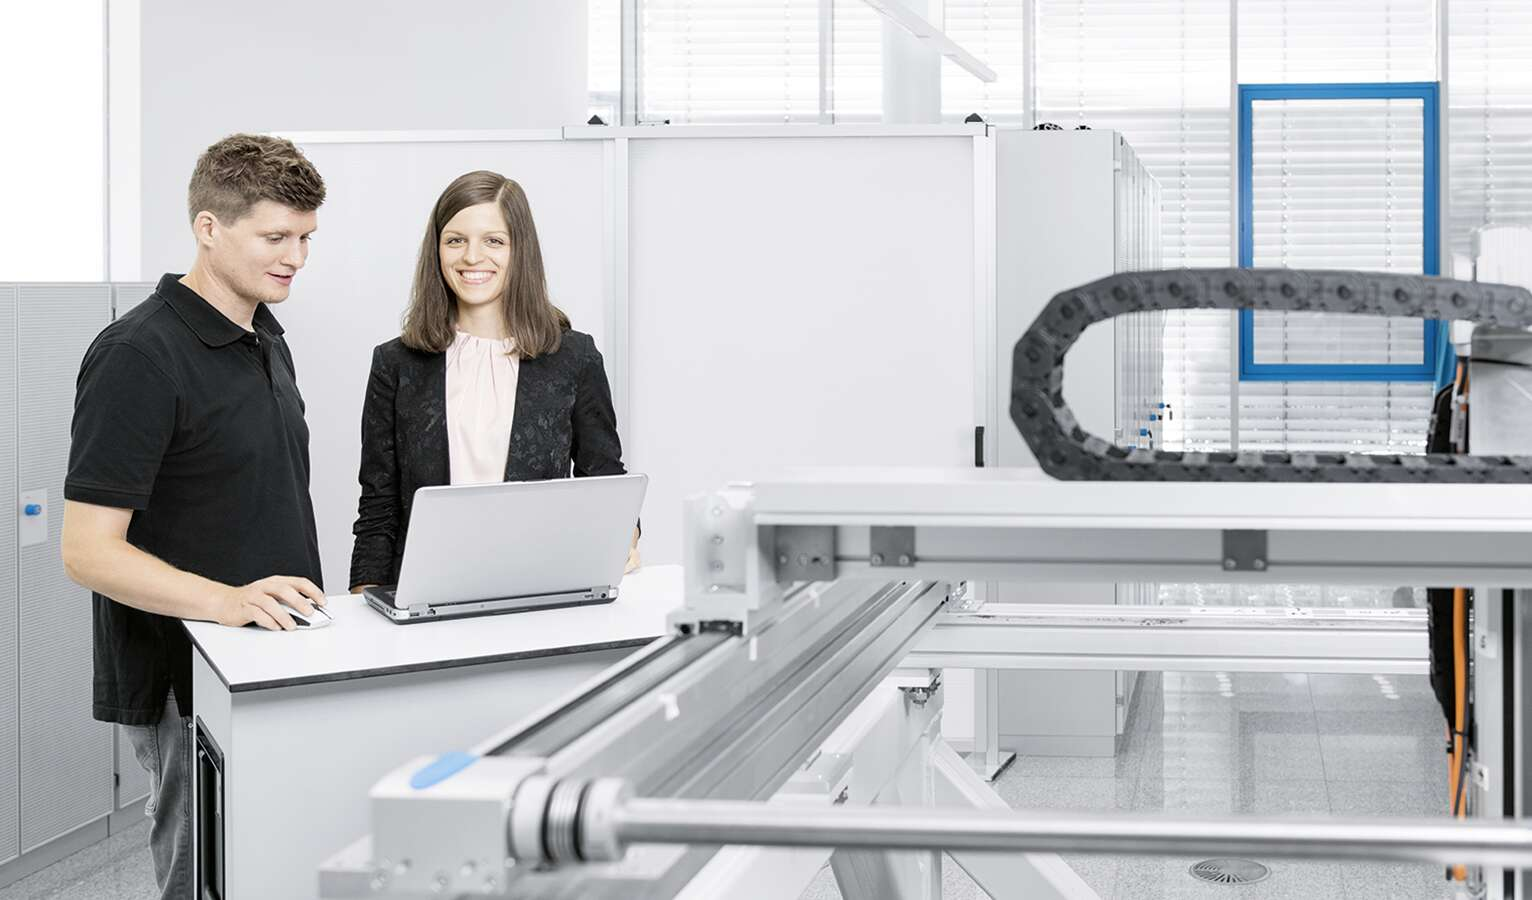 Research engineer Lena Hägele (right): after a scholarship, she joined the company directly